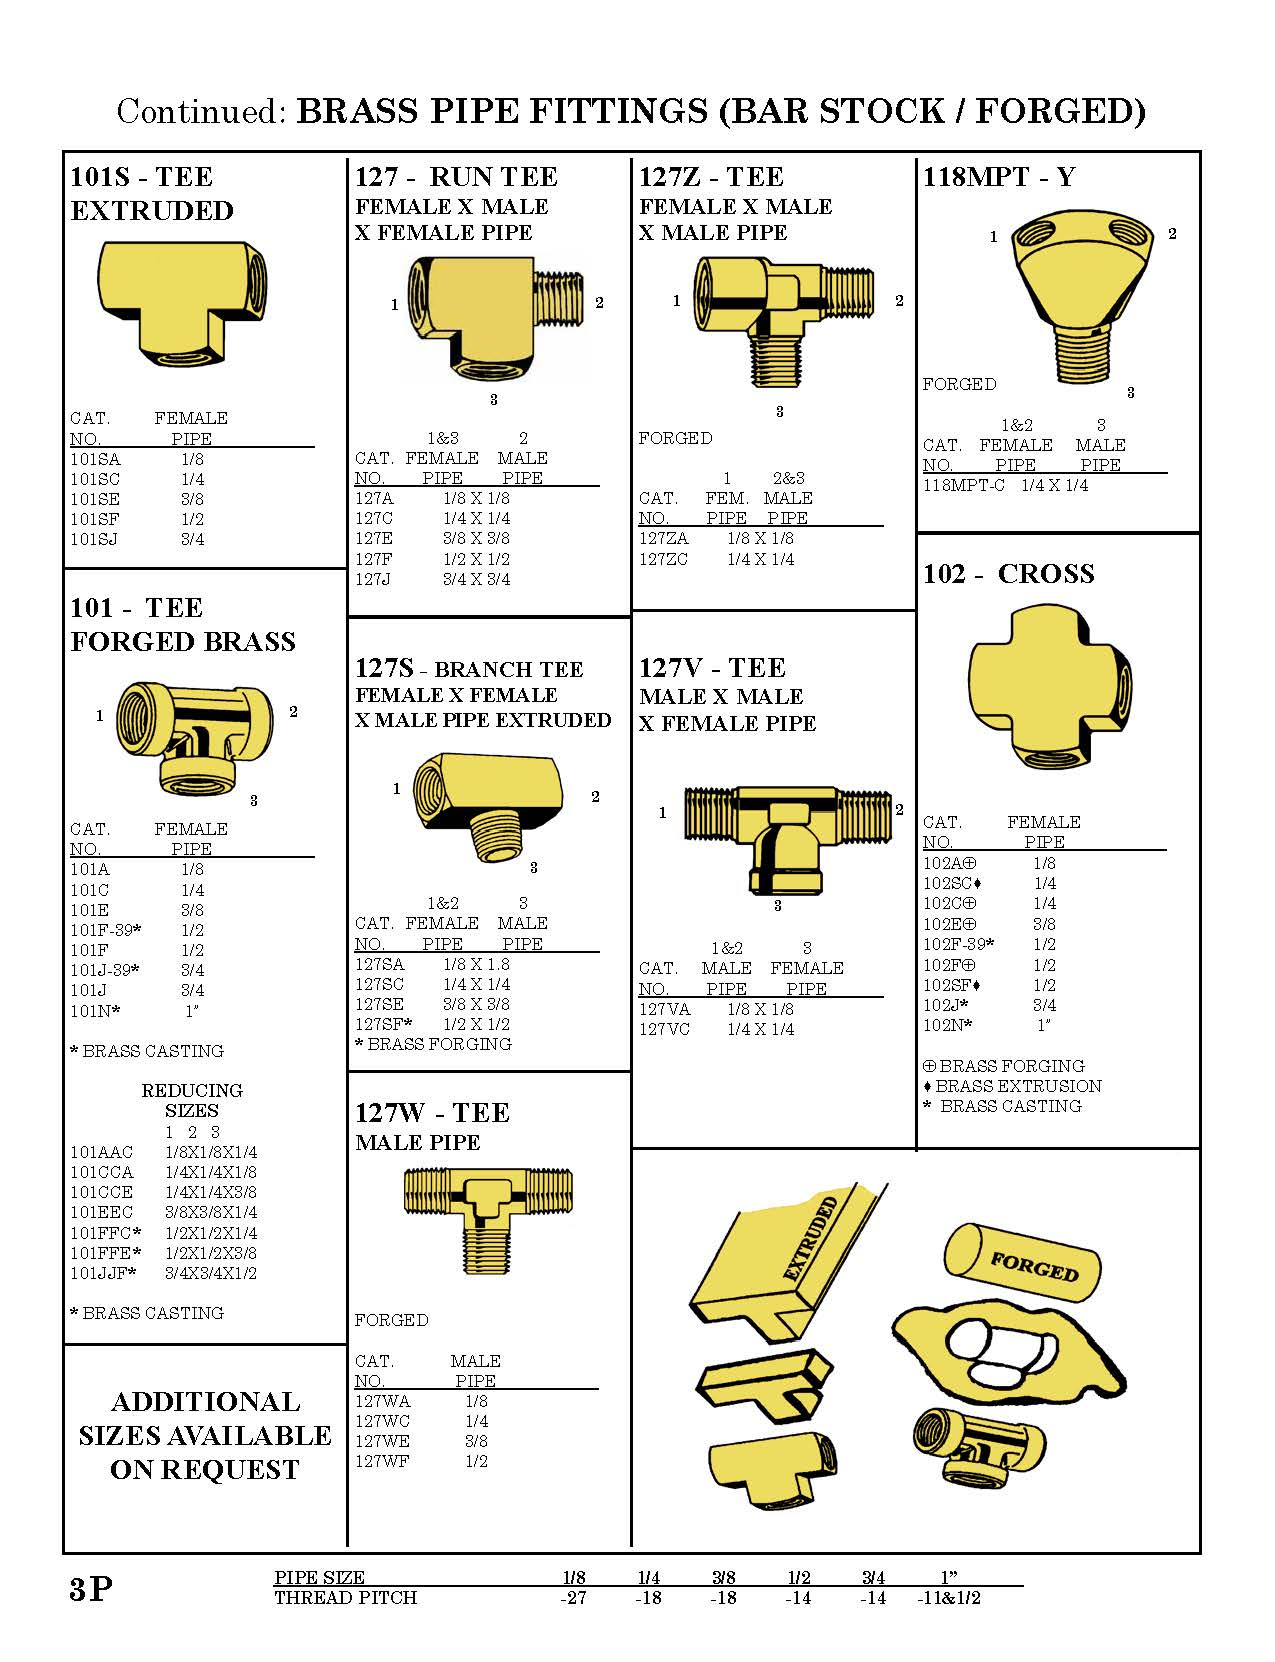 Brass fittings hardware mfg